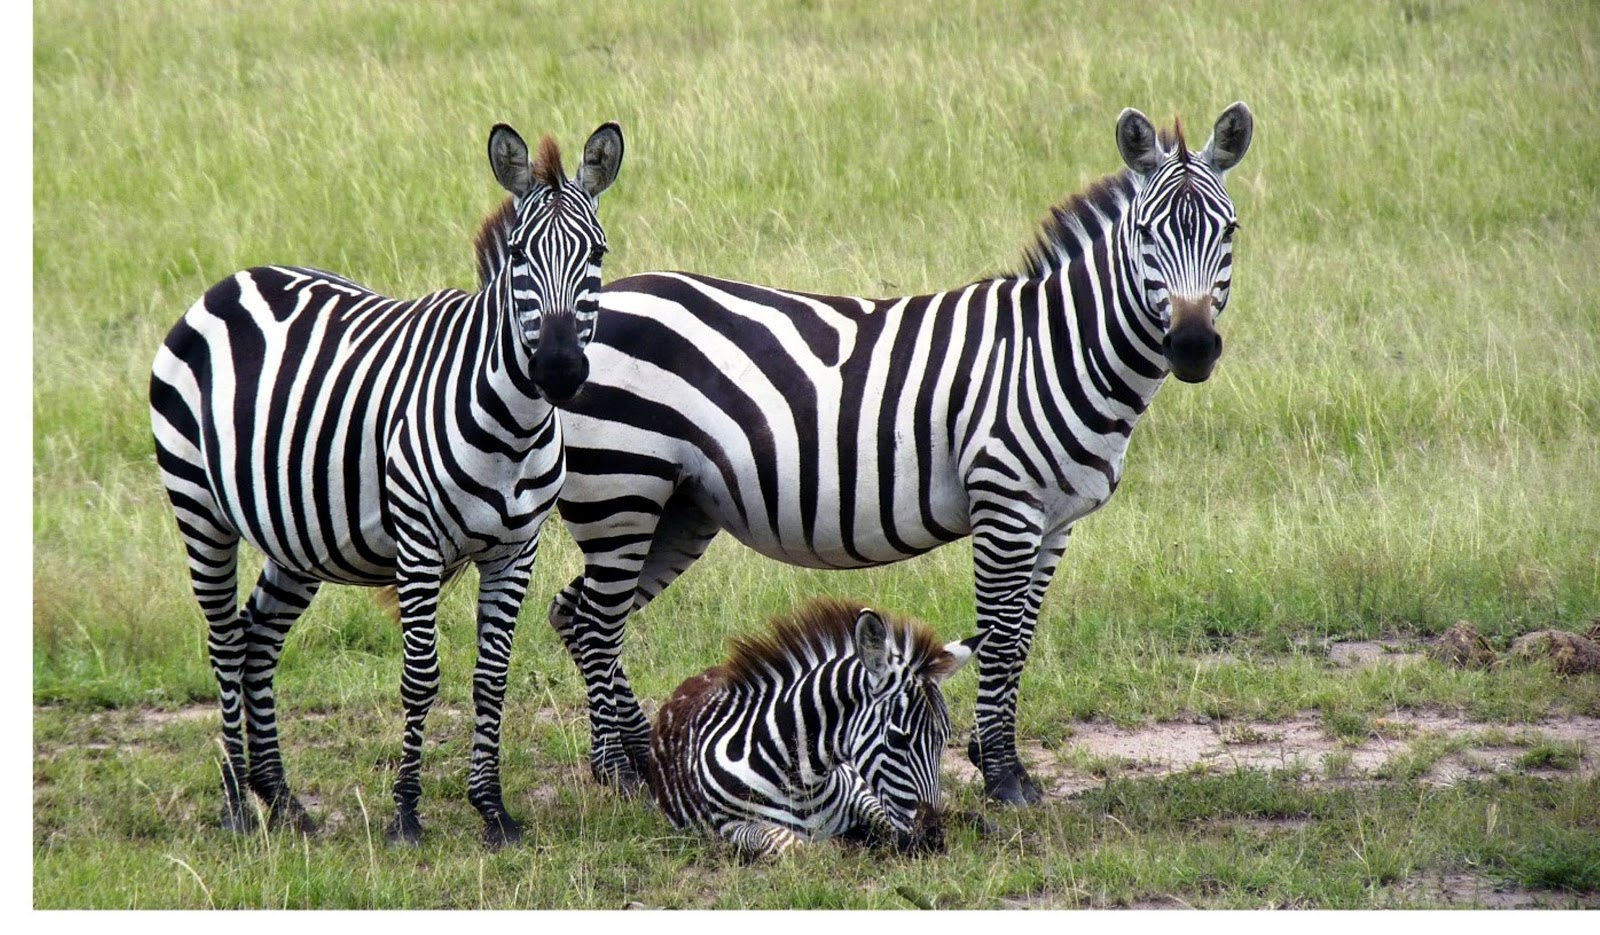 Zebra in Knya